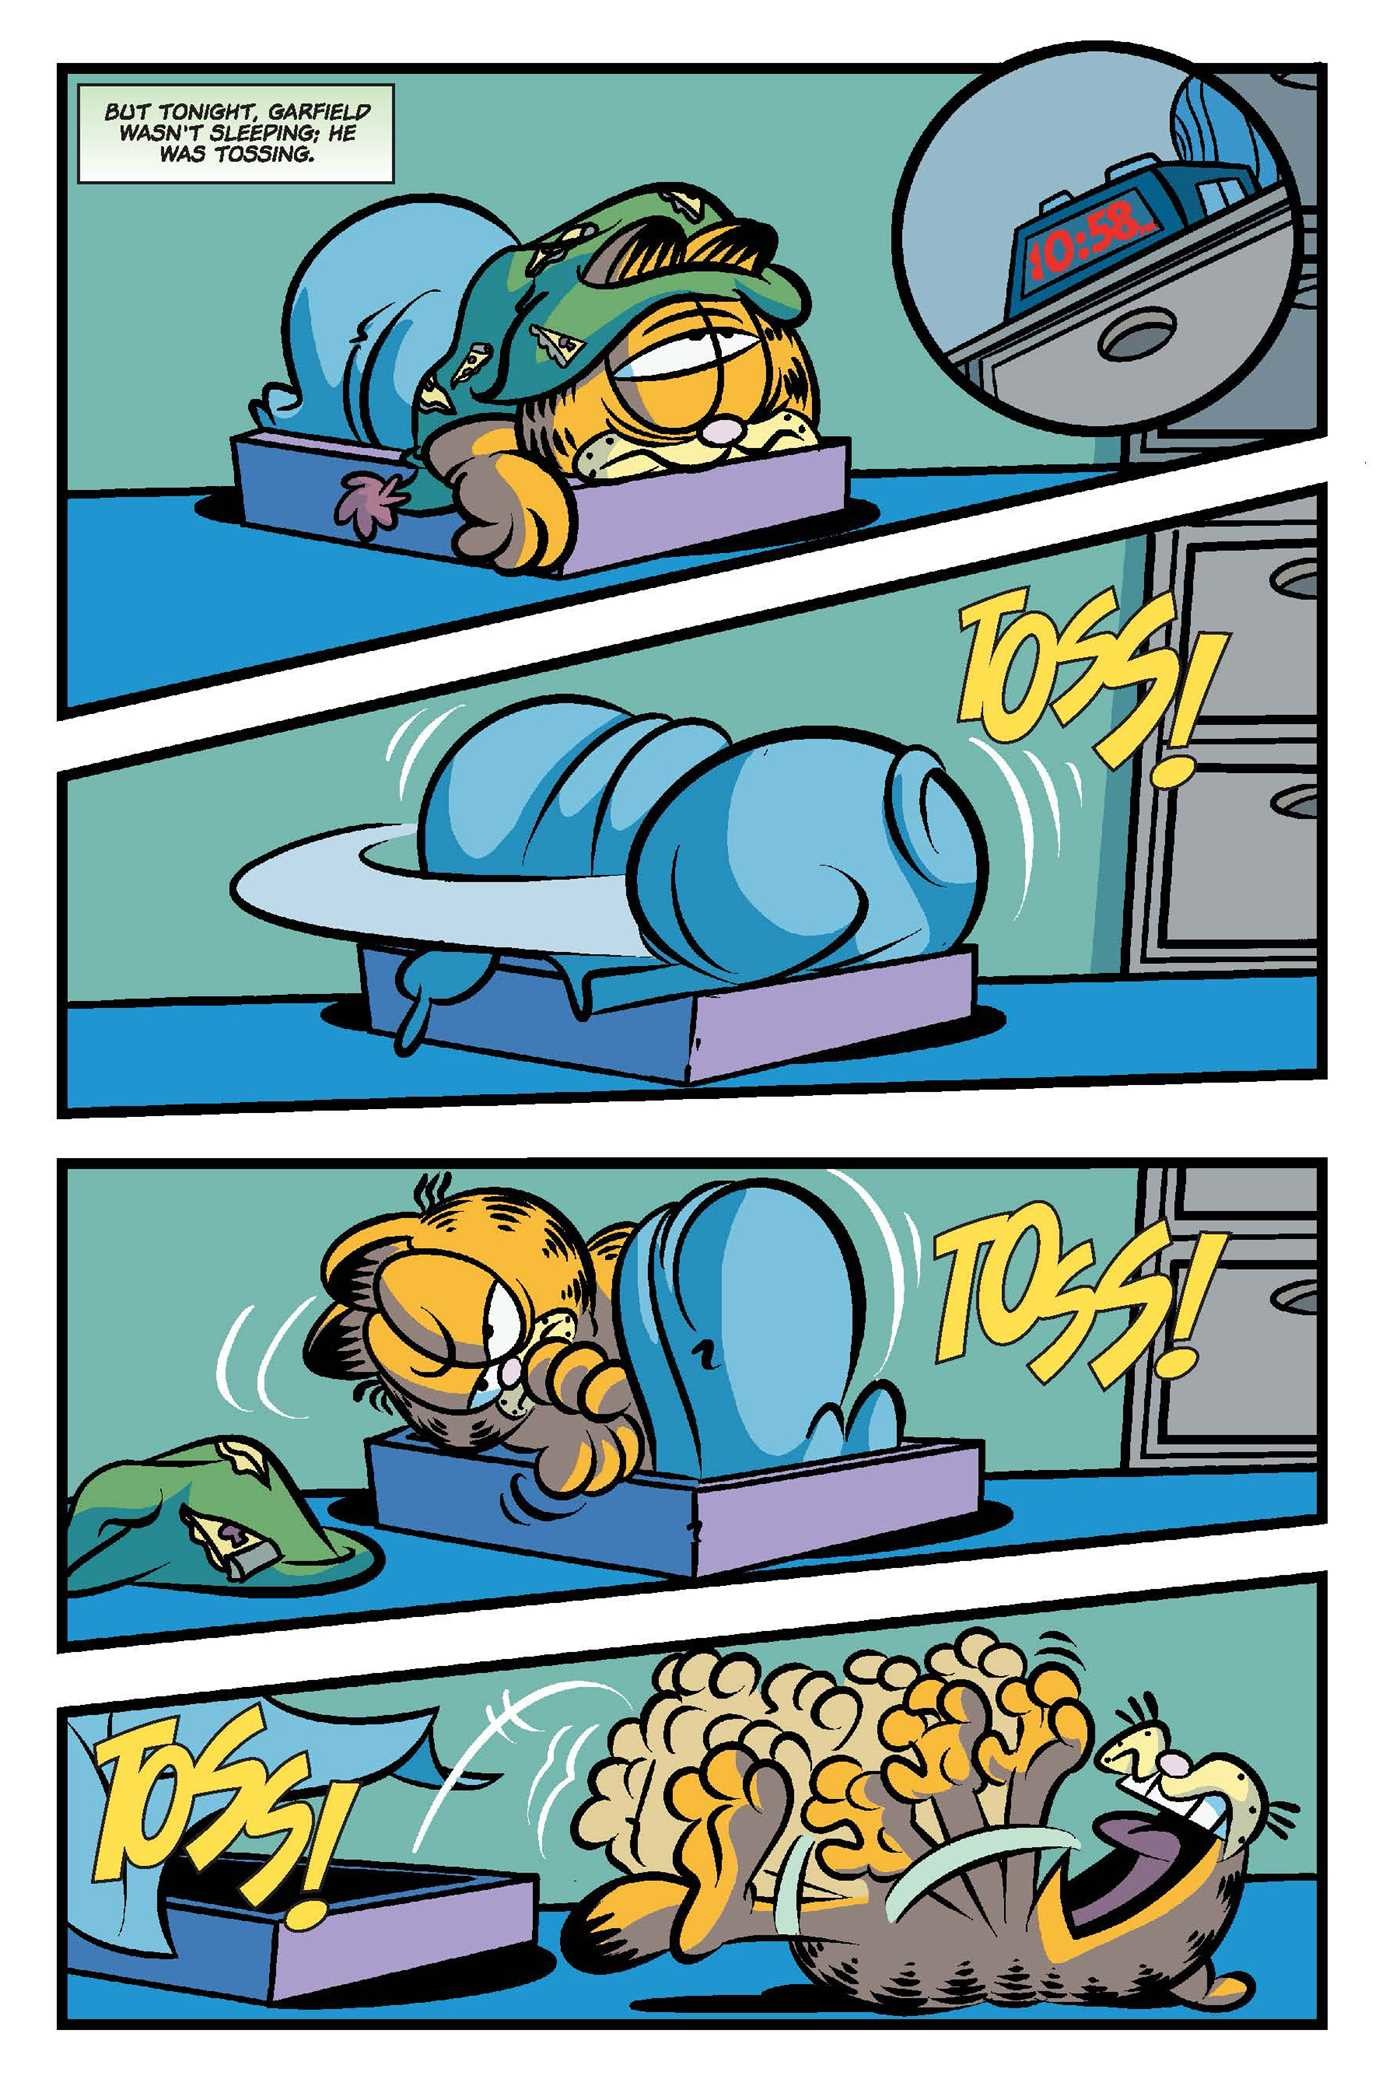 Garfield original graphic novel the thing in the fridge 9781684150199.in02